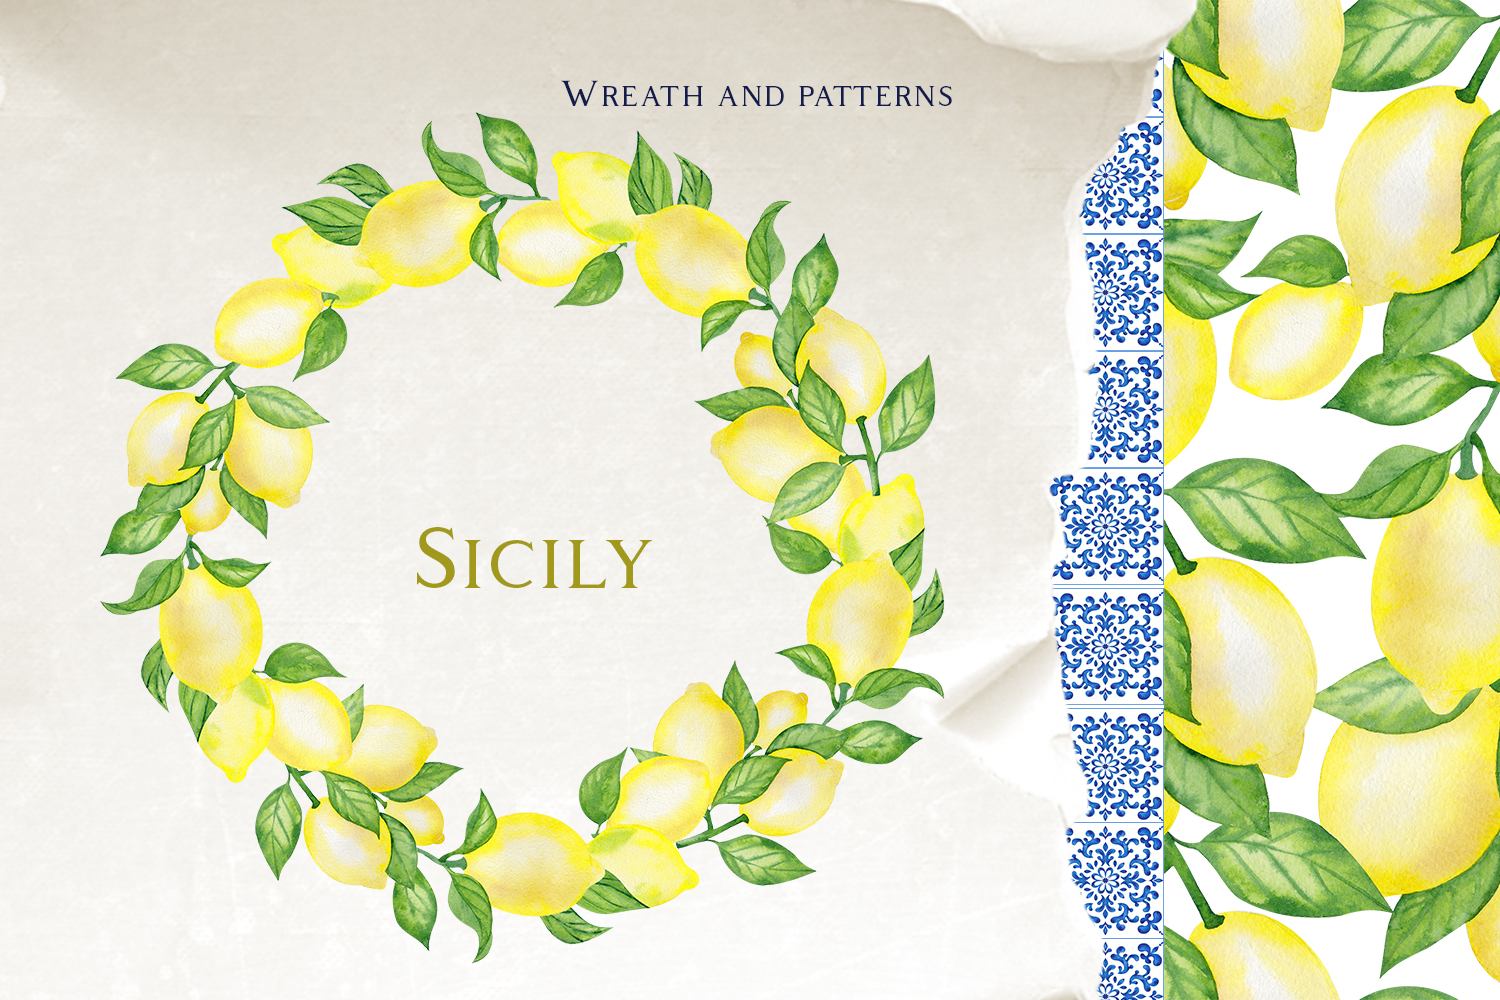 Sicily. Ornament and fruits example image 6